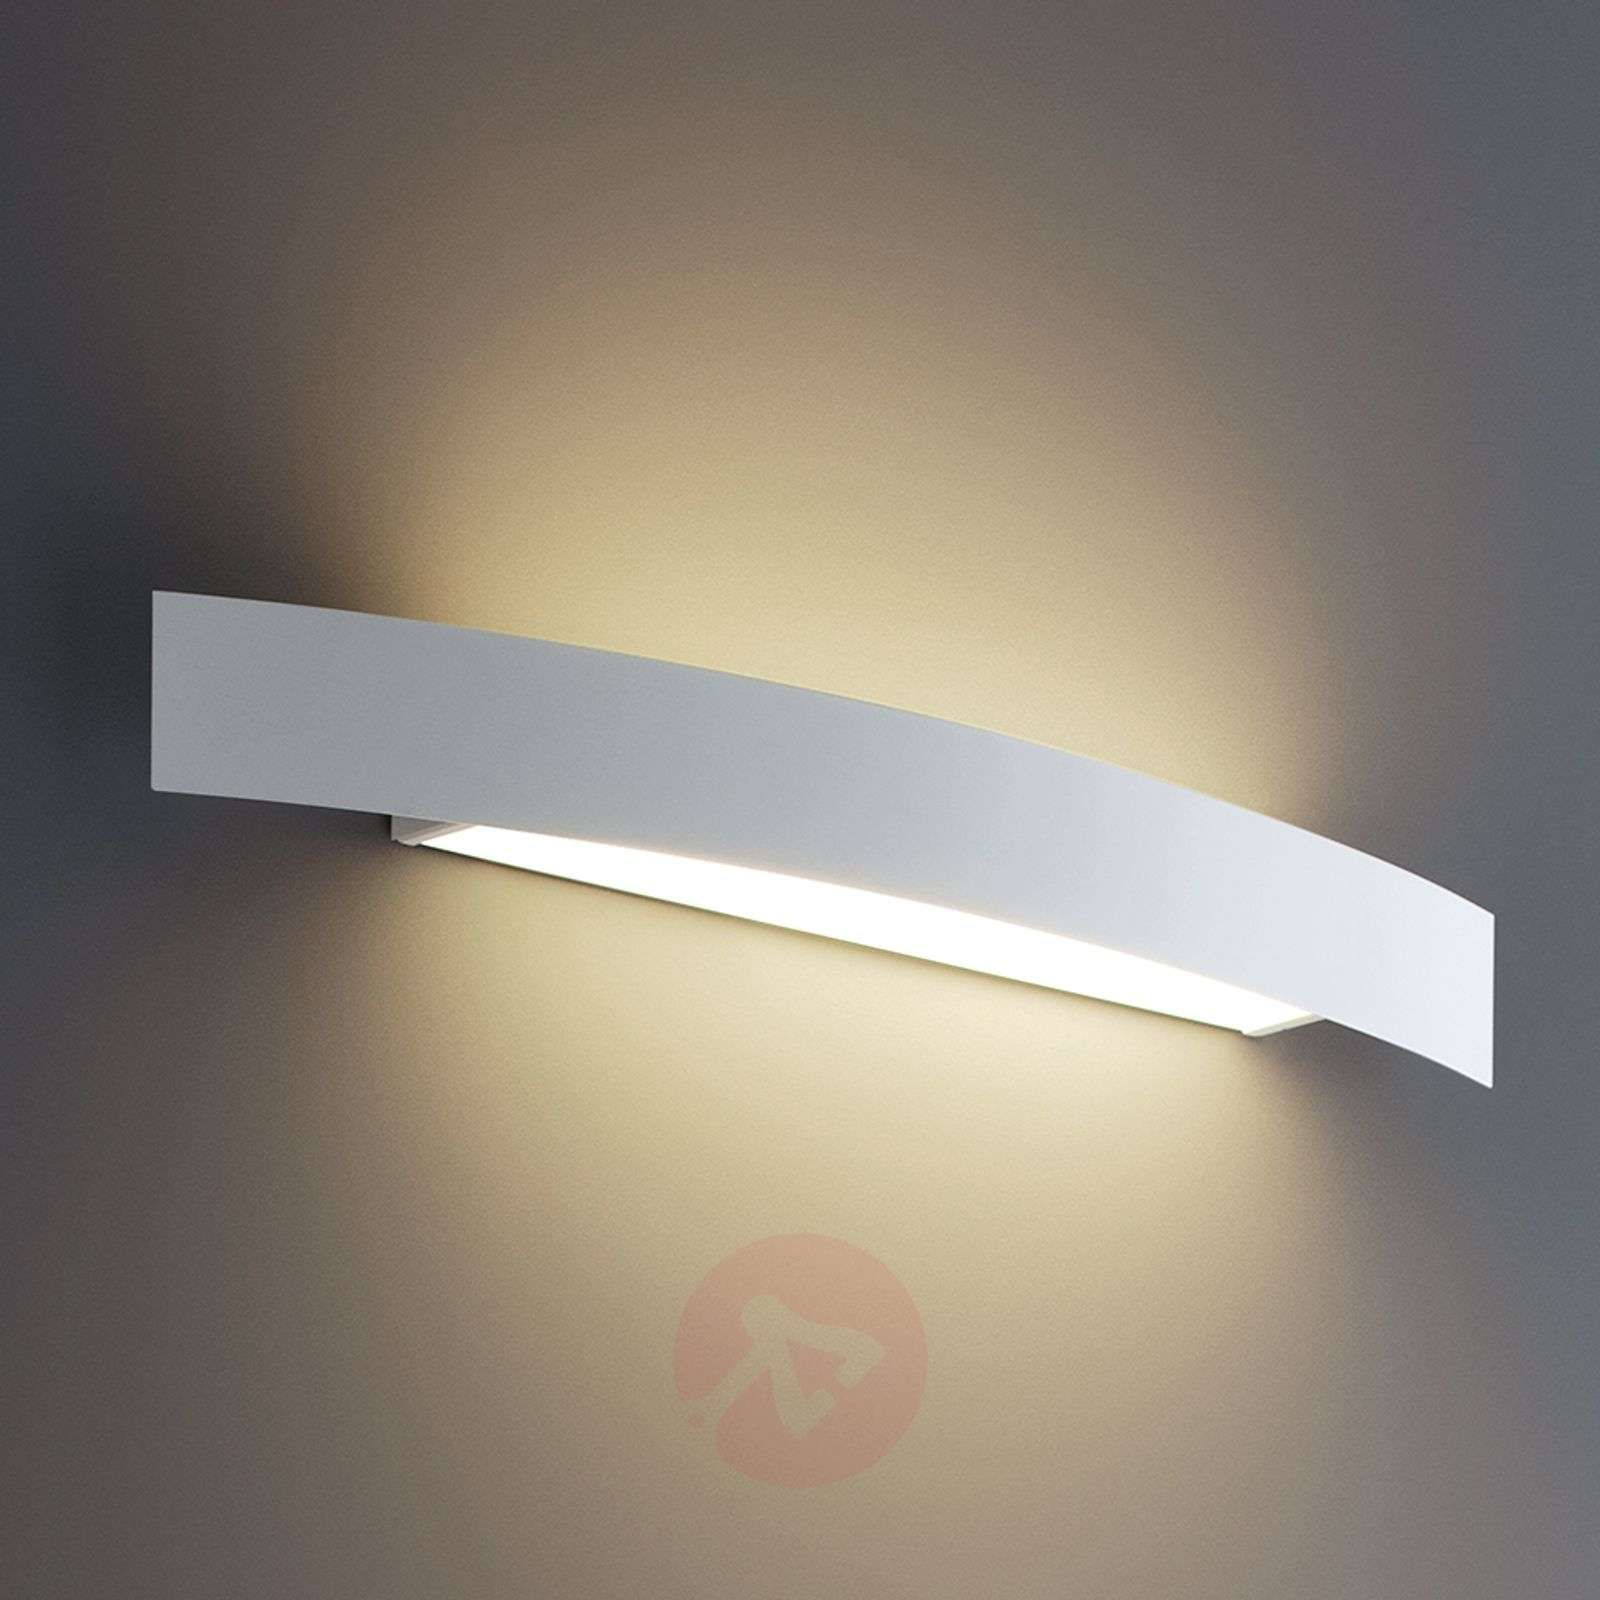 Applique LED moderne LED Riga-3520384-01